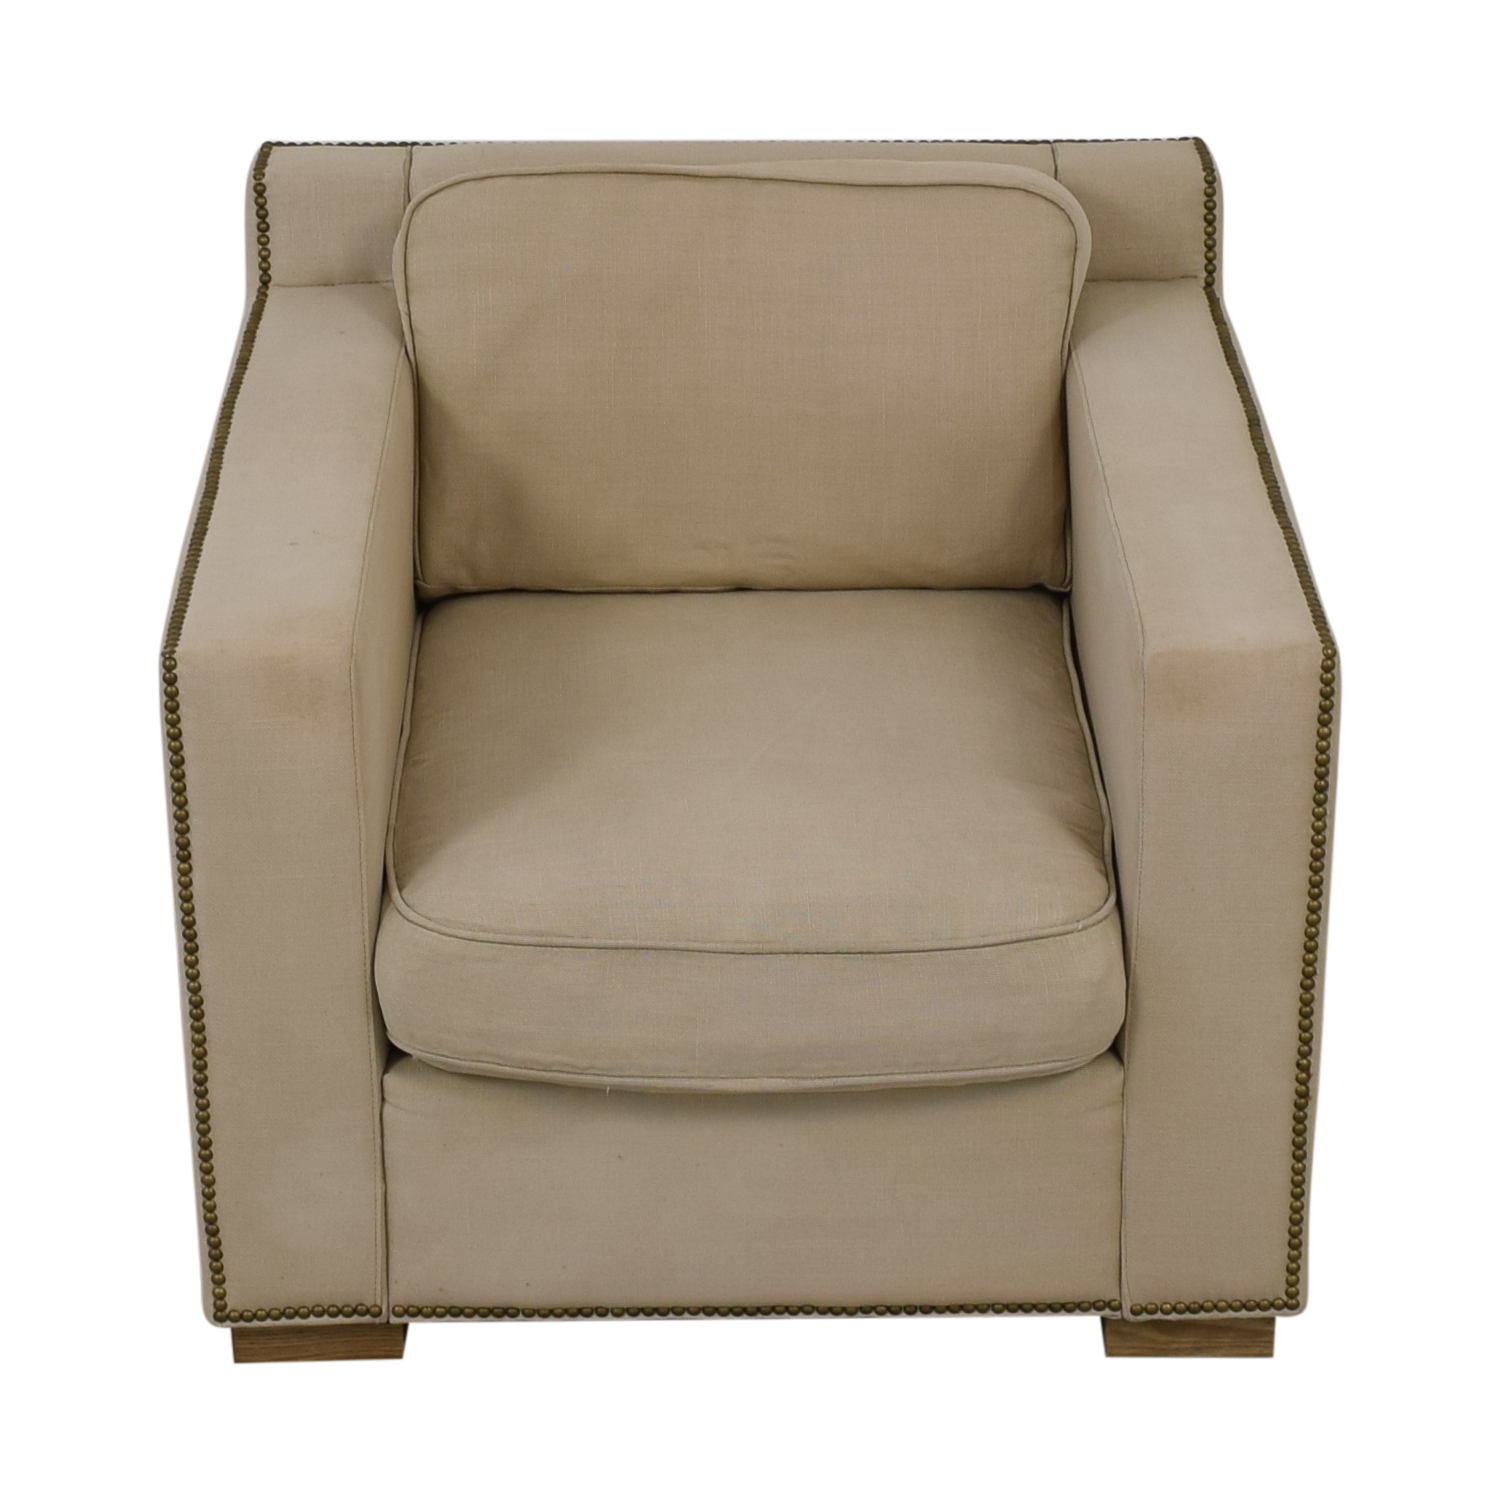 Restoration Hardware Restoration Hardware Collins Beige Nailhead Accent Chair second hand